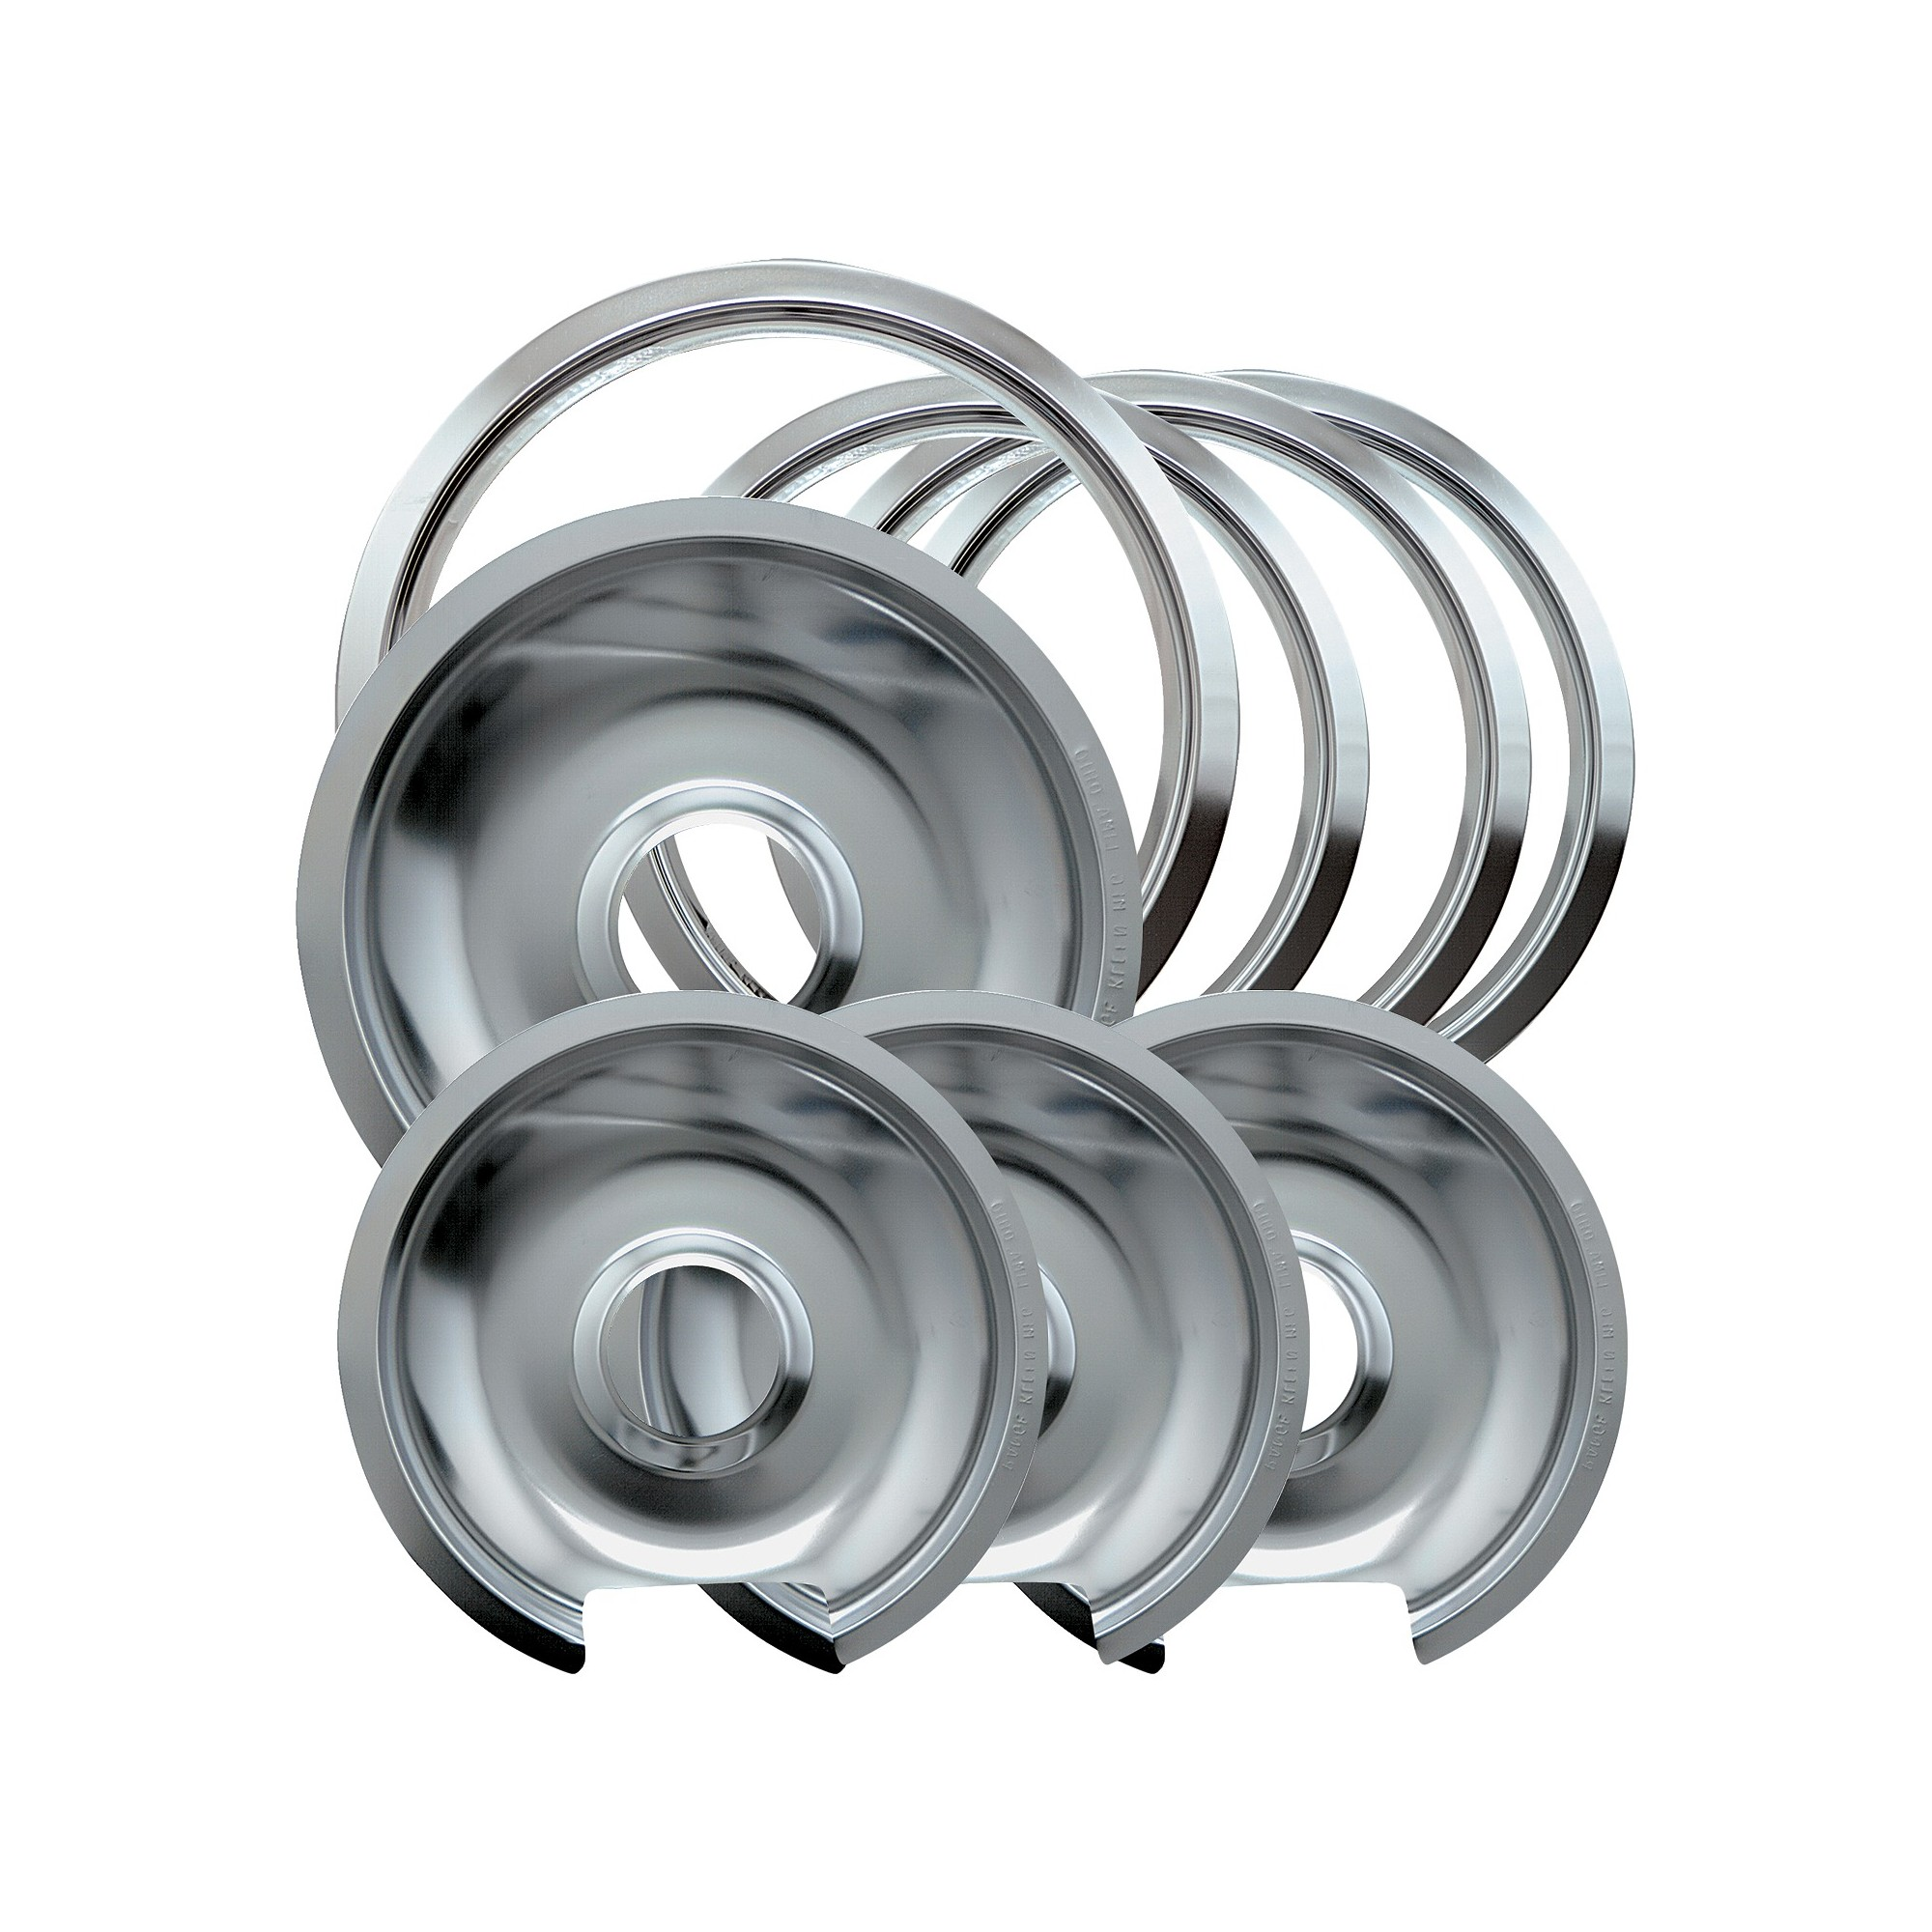 Chrome Drip Pans and Trim Rings for GE Hotpoint Electric Stoves with Hinged Elements 8-pc.